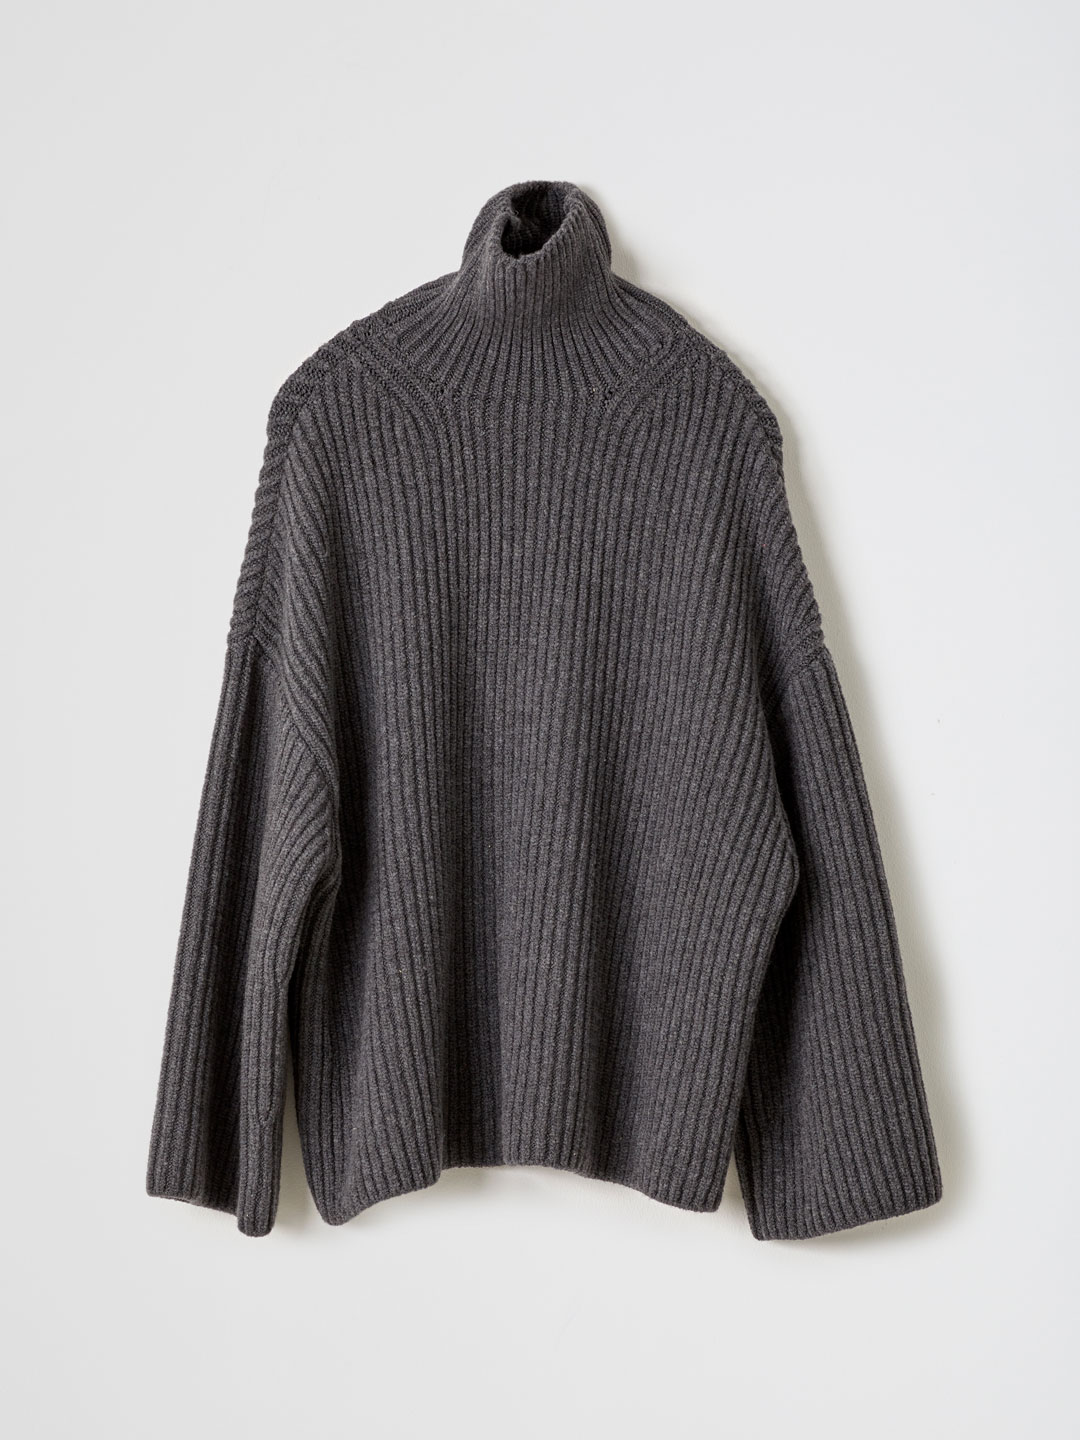 Raw / Wool-blended Turtleneck Sweater - Charcoal Grey